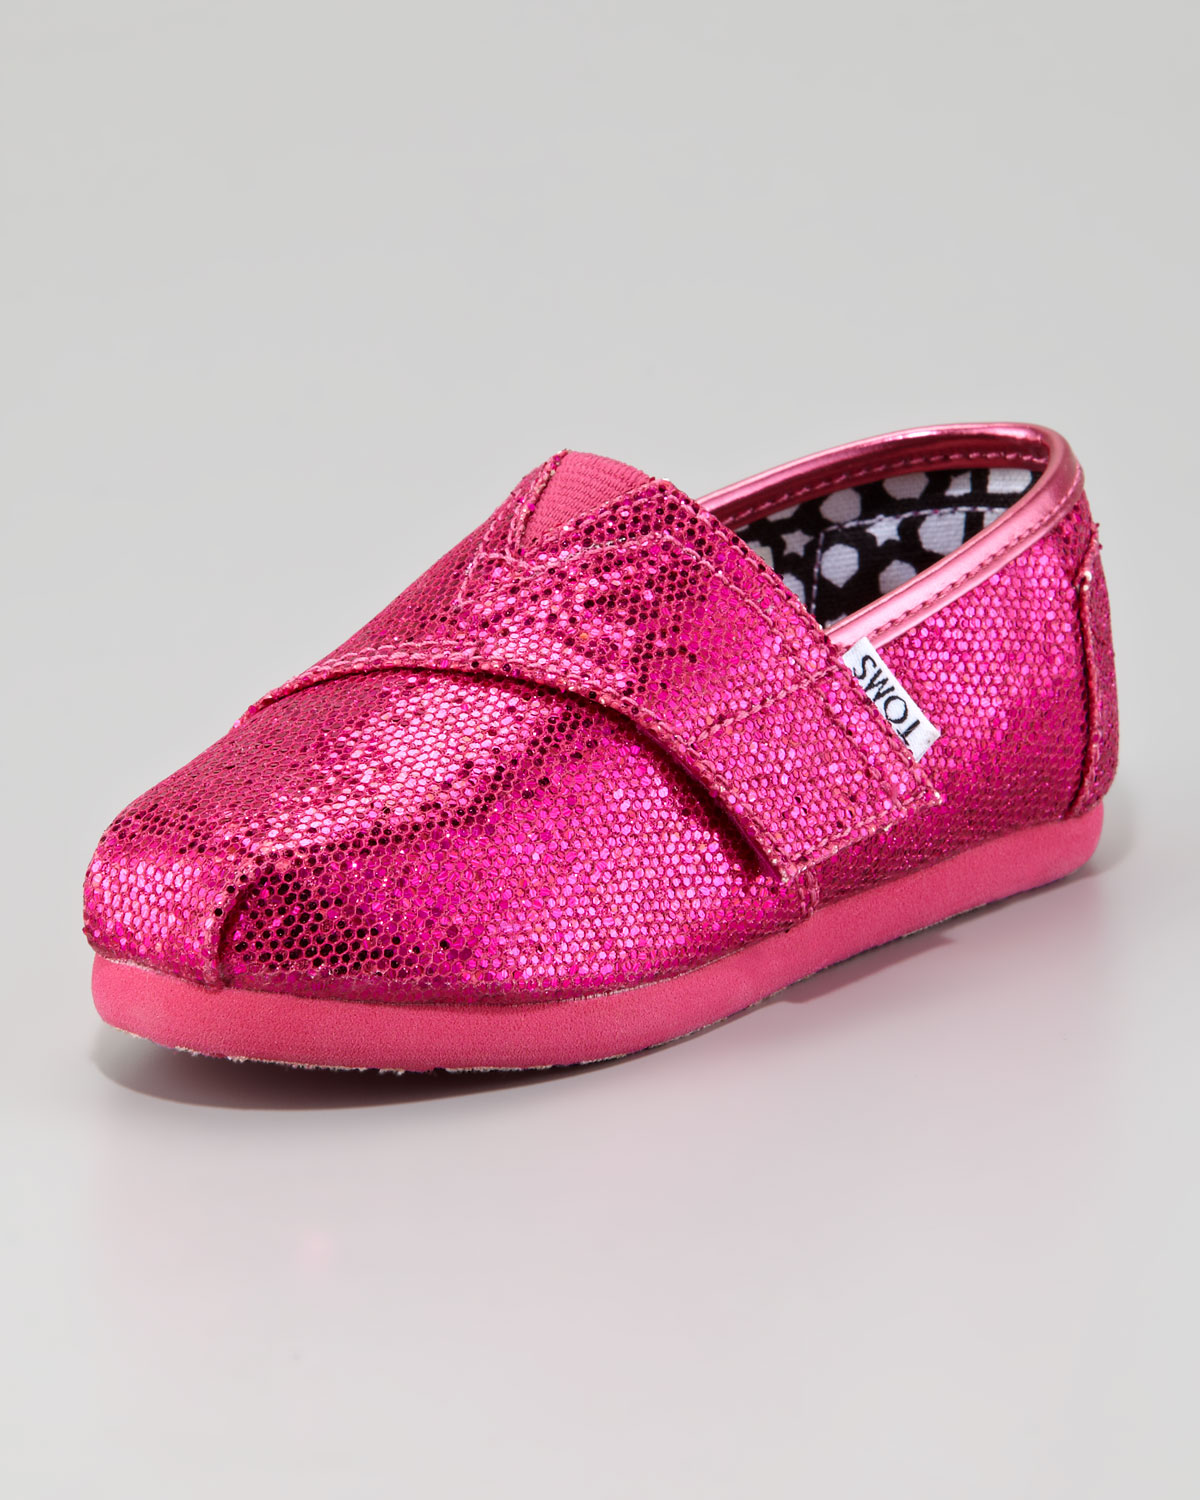 Lyst - Toms Hot Pink Glitter Shoe Tiny in Pink